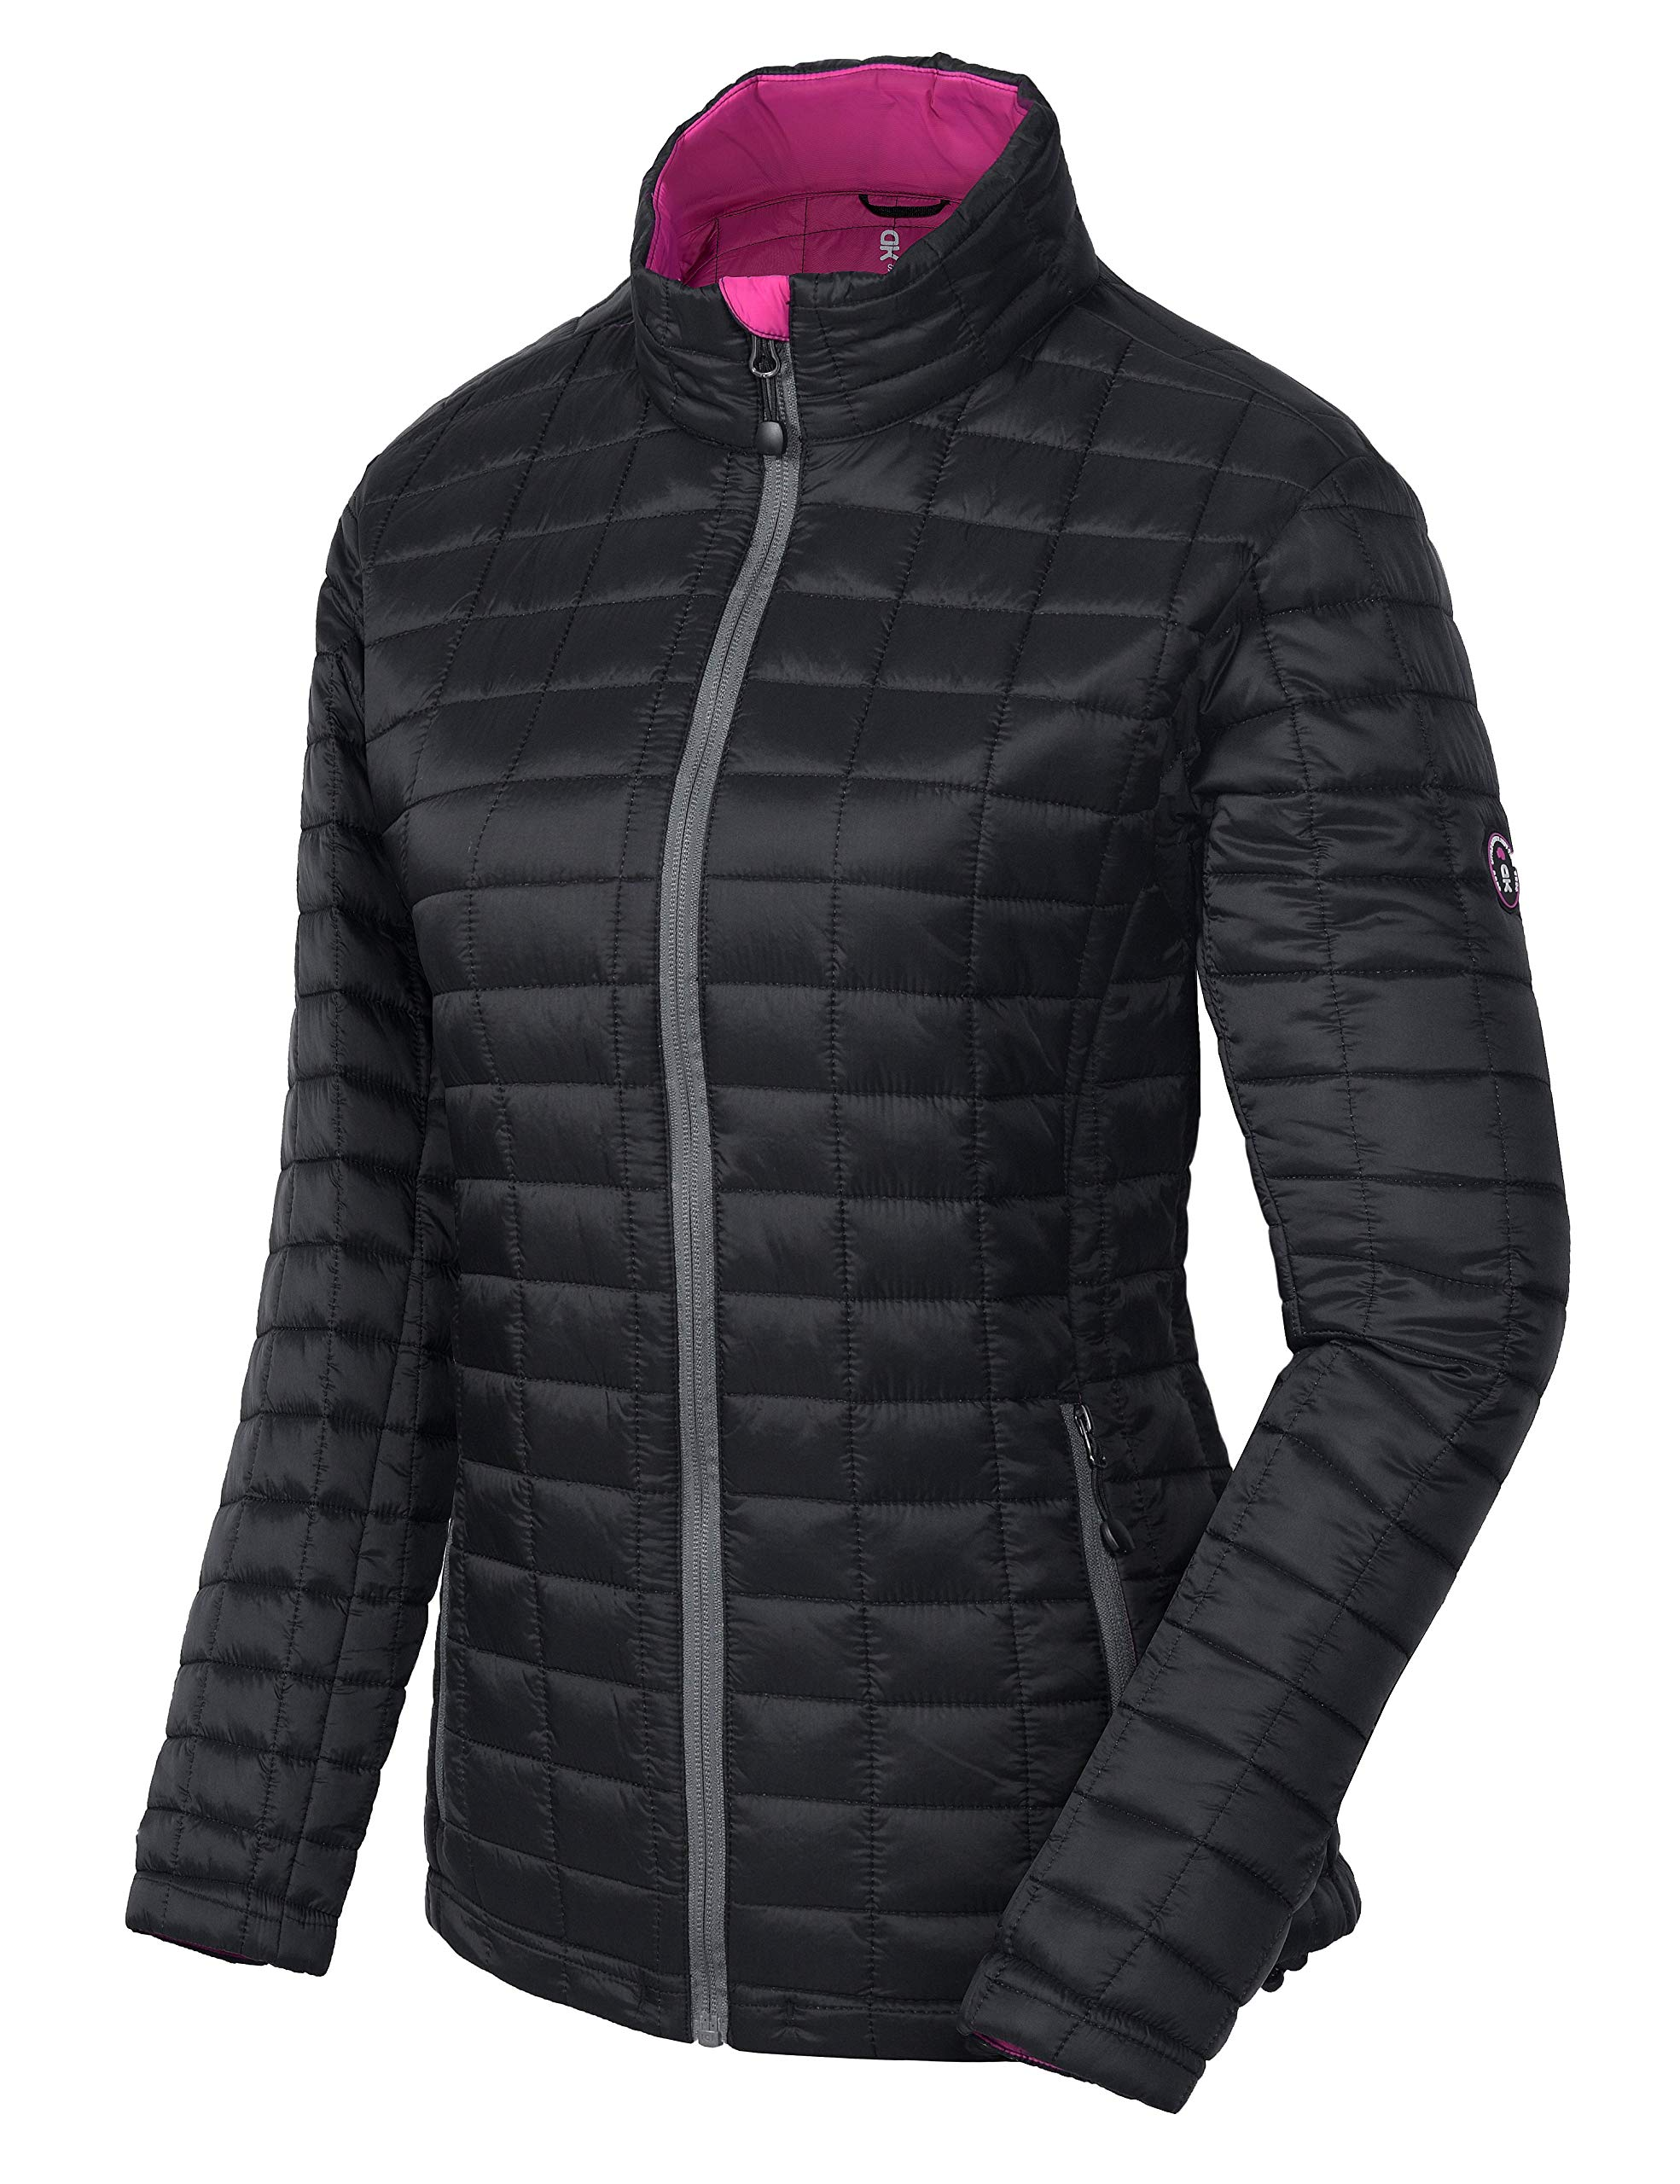 Little Donkey Andy Women's Insulated Jacket, Quilted Puffer Jacket with Eco-Friendly Synthetic Insulation Black L by Little Donkey Andy